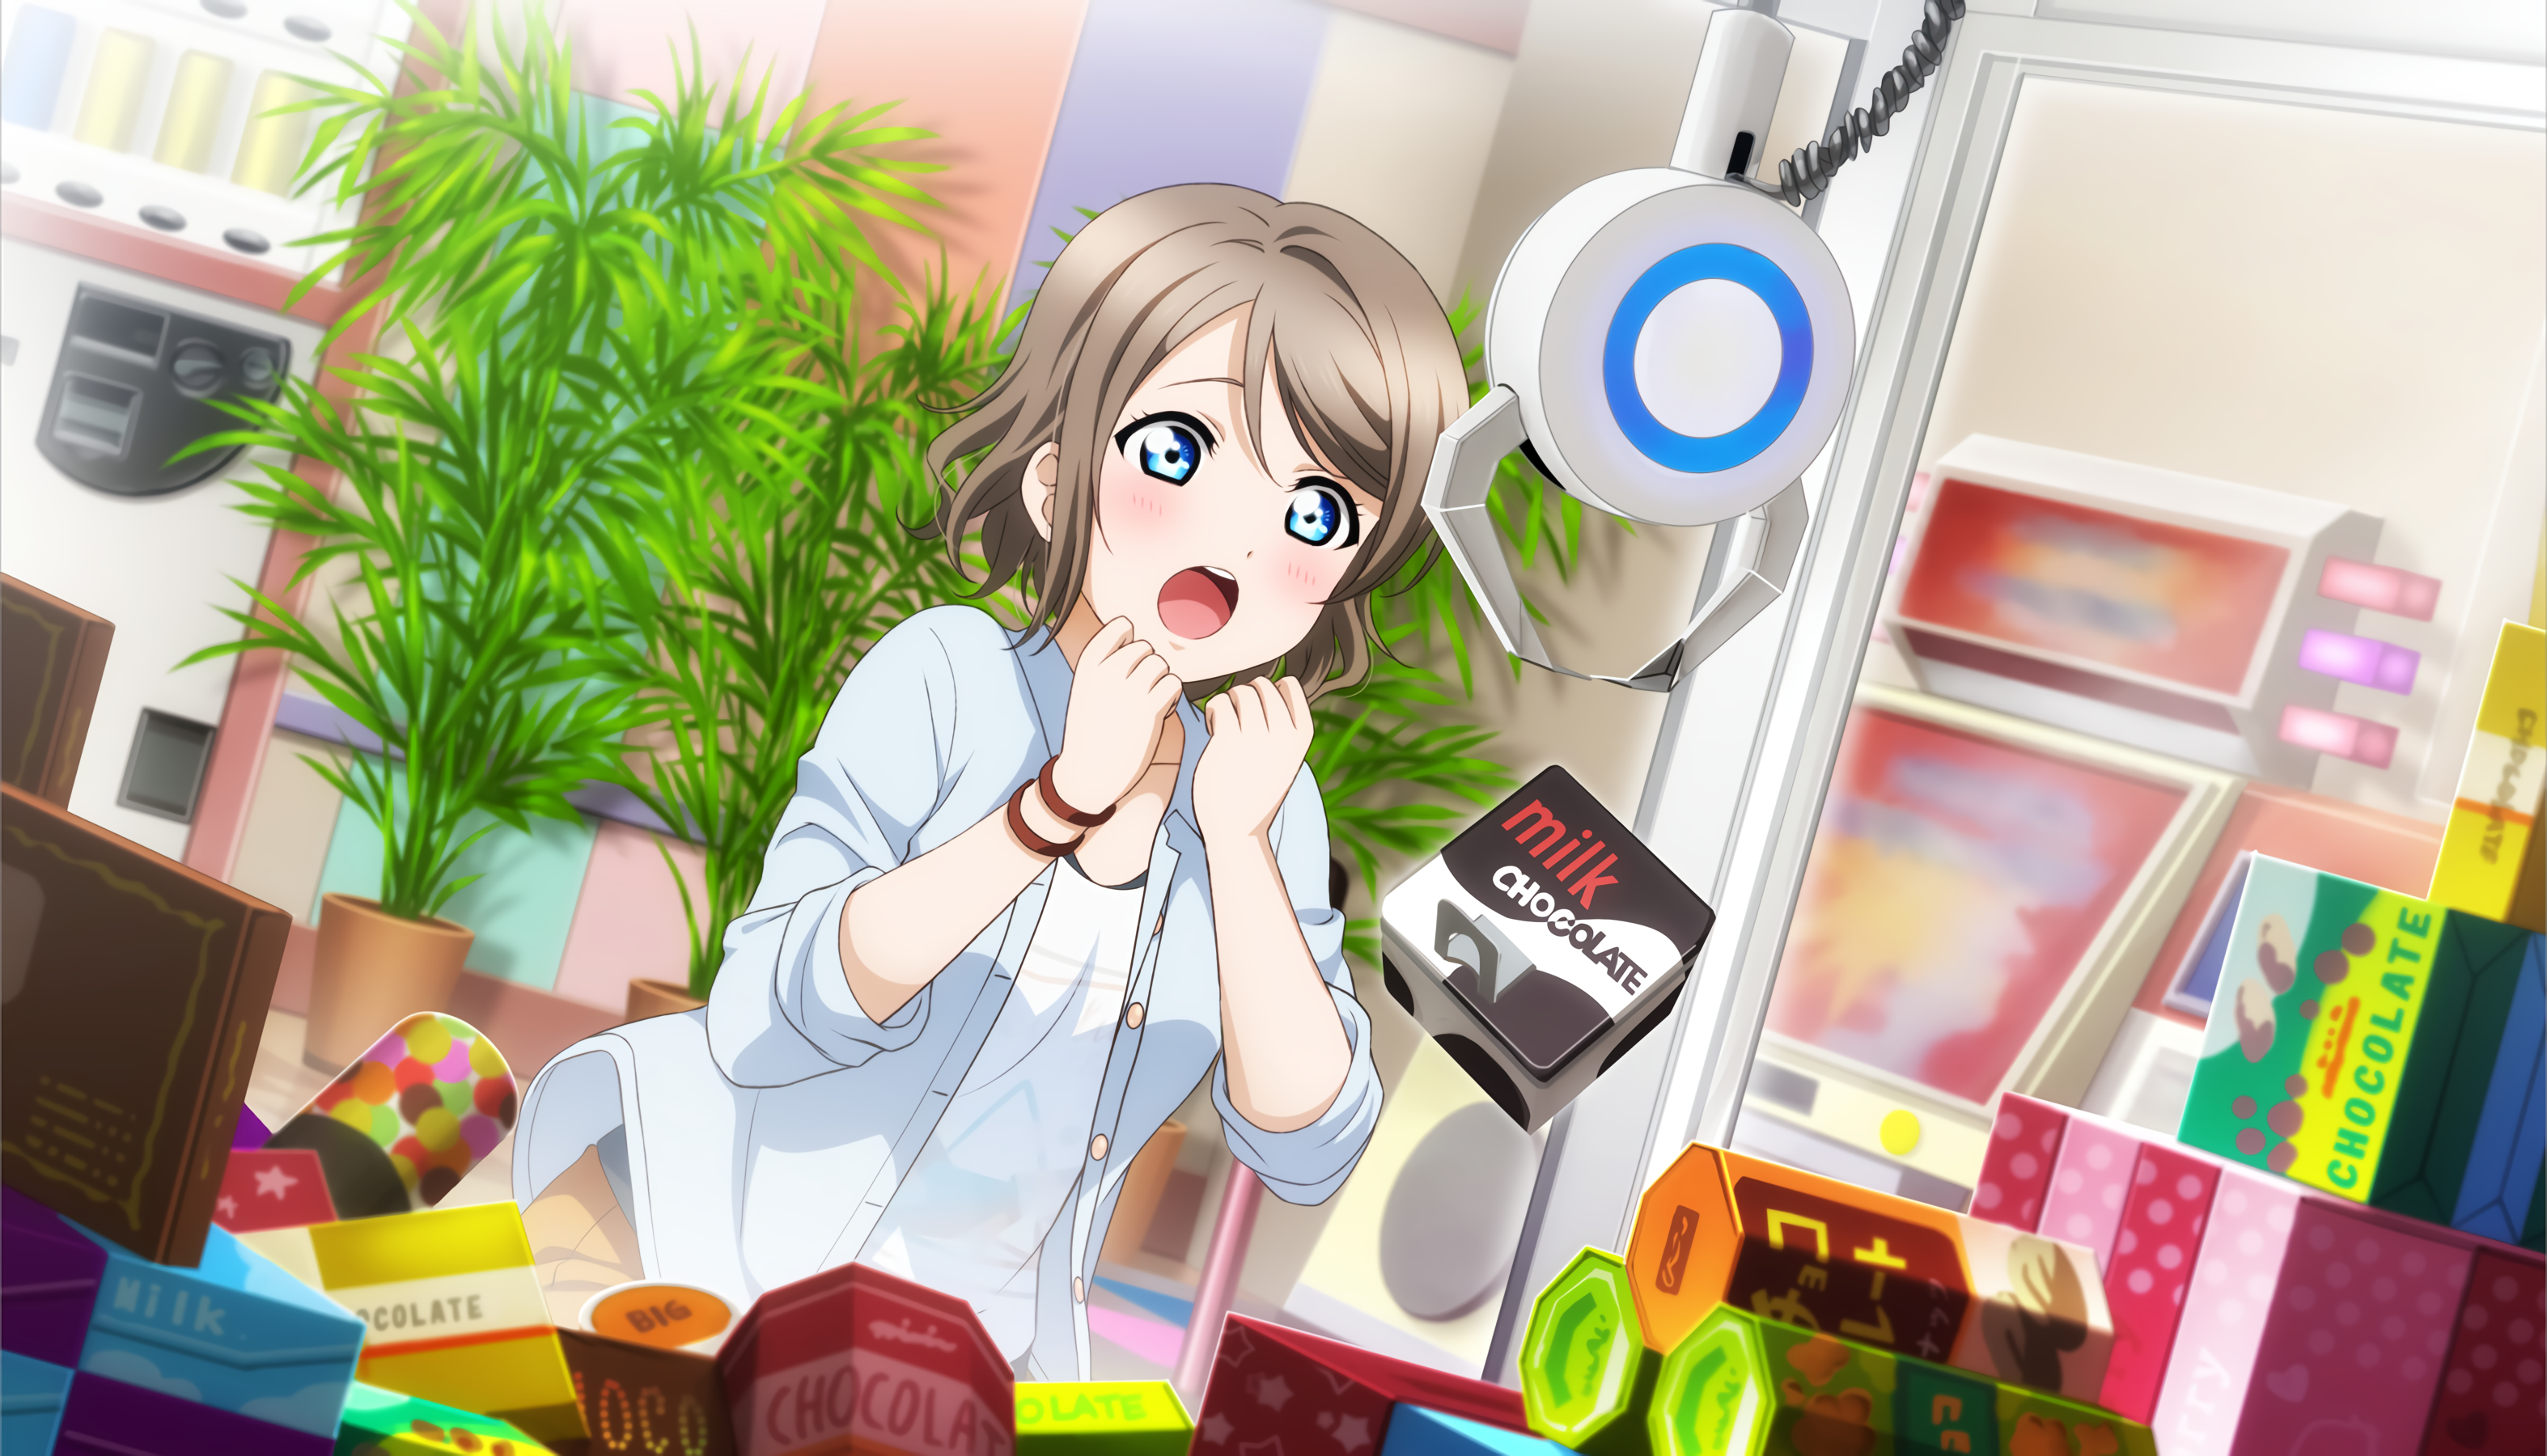 Still Watanabe You Stills List All Stars Idol Story Love Live Check out our you watanabe selection for the very best in unique or custom, handmade pieces from our keychains shops. still watanabe you stills list